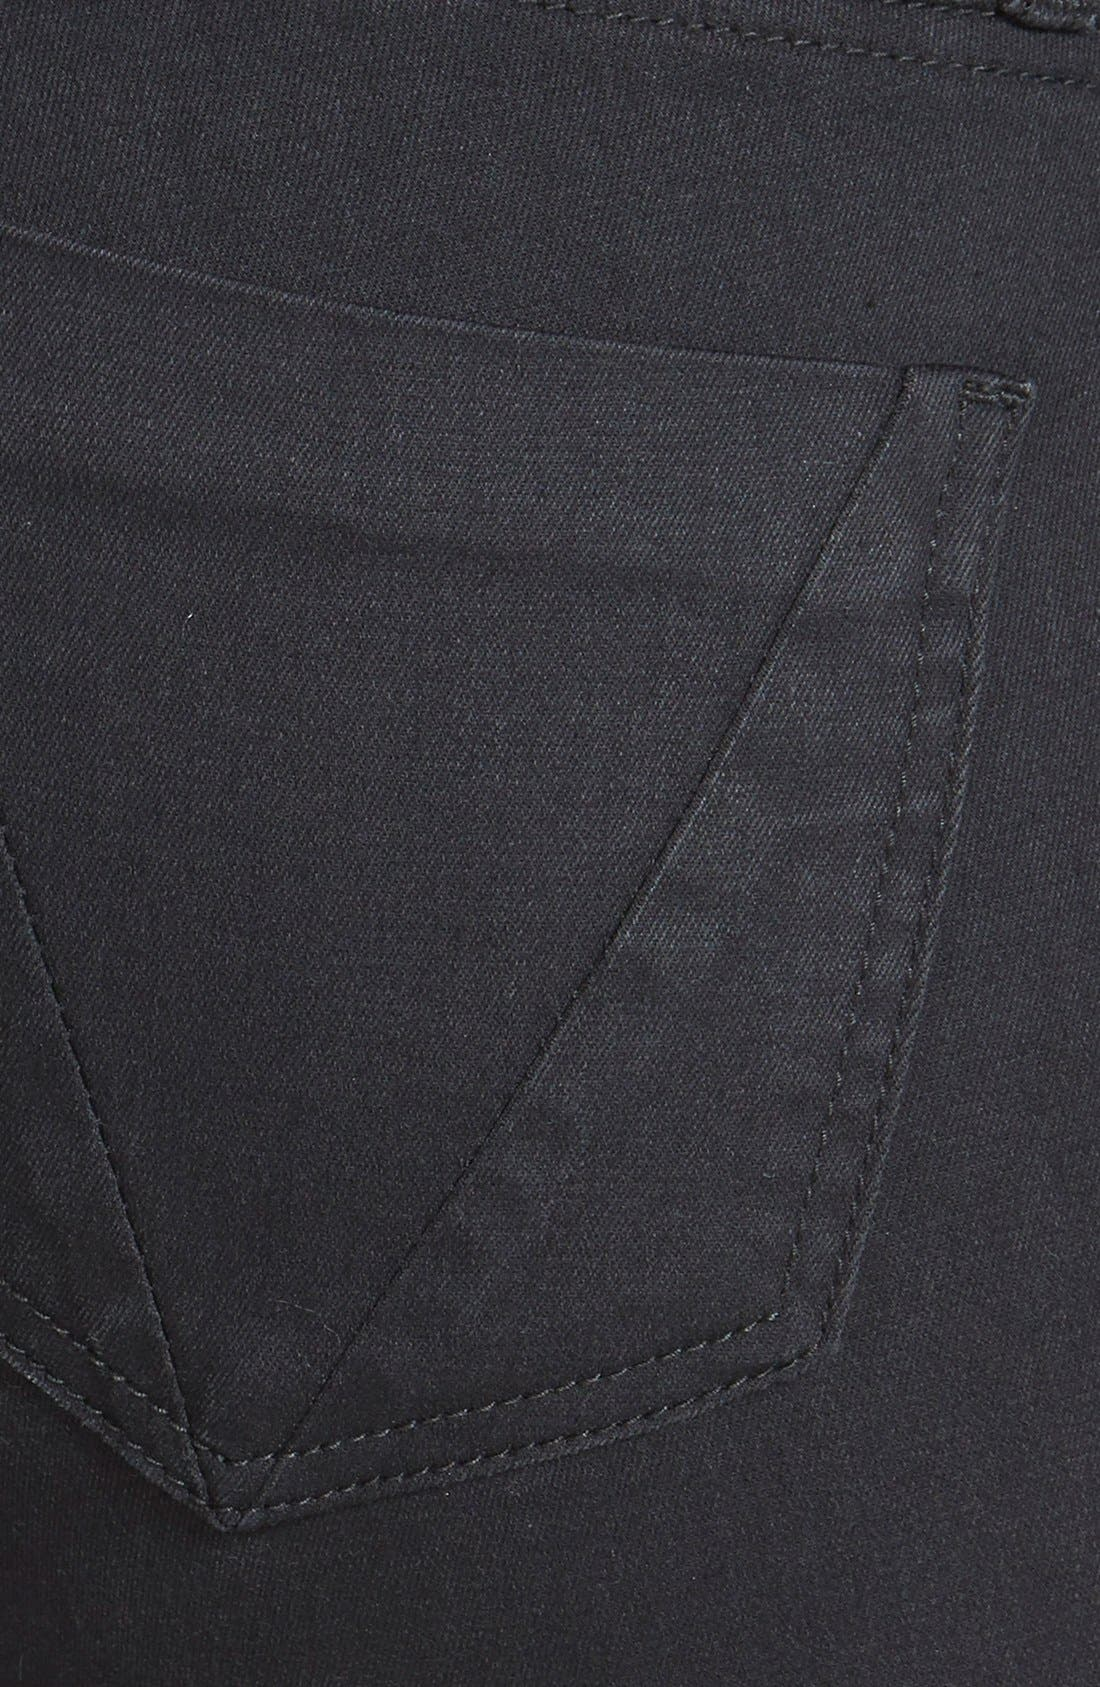 Alternate Image 3  - STS Blue Stretch Skinny Jeans (Black)